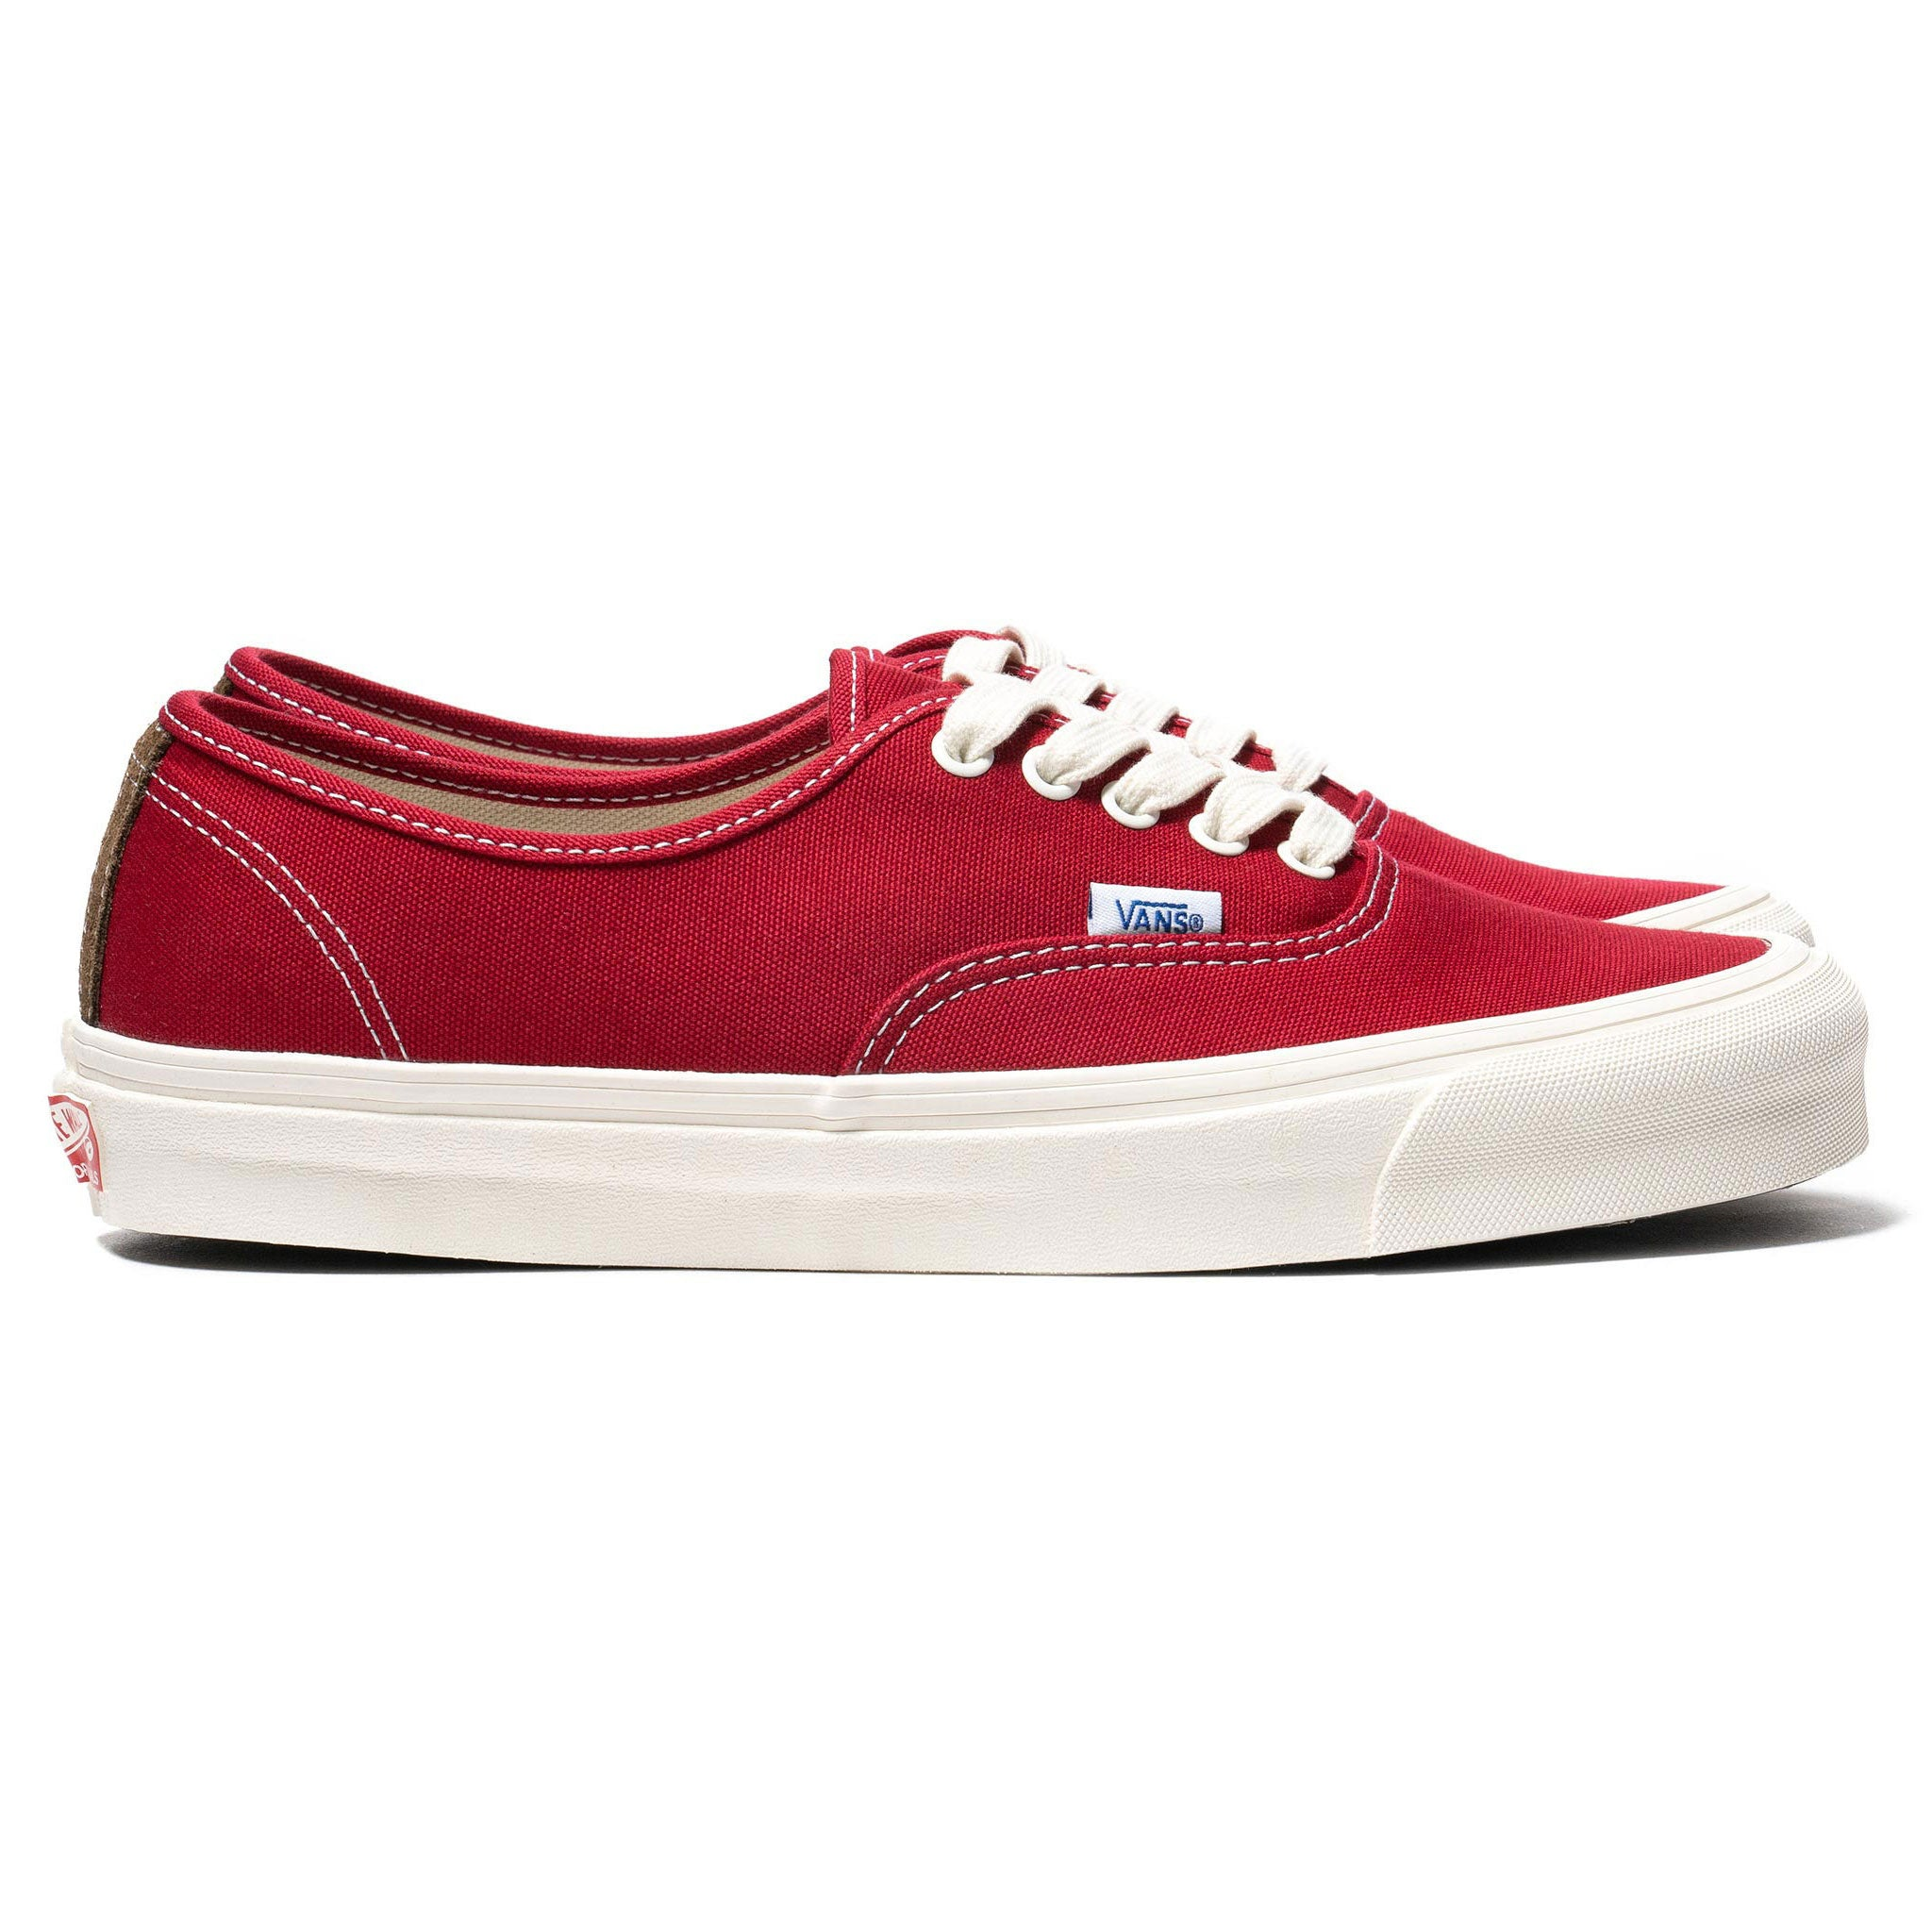 92ffeab250 OG Authentic LX Chili Pepper – HAVEN